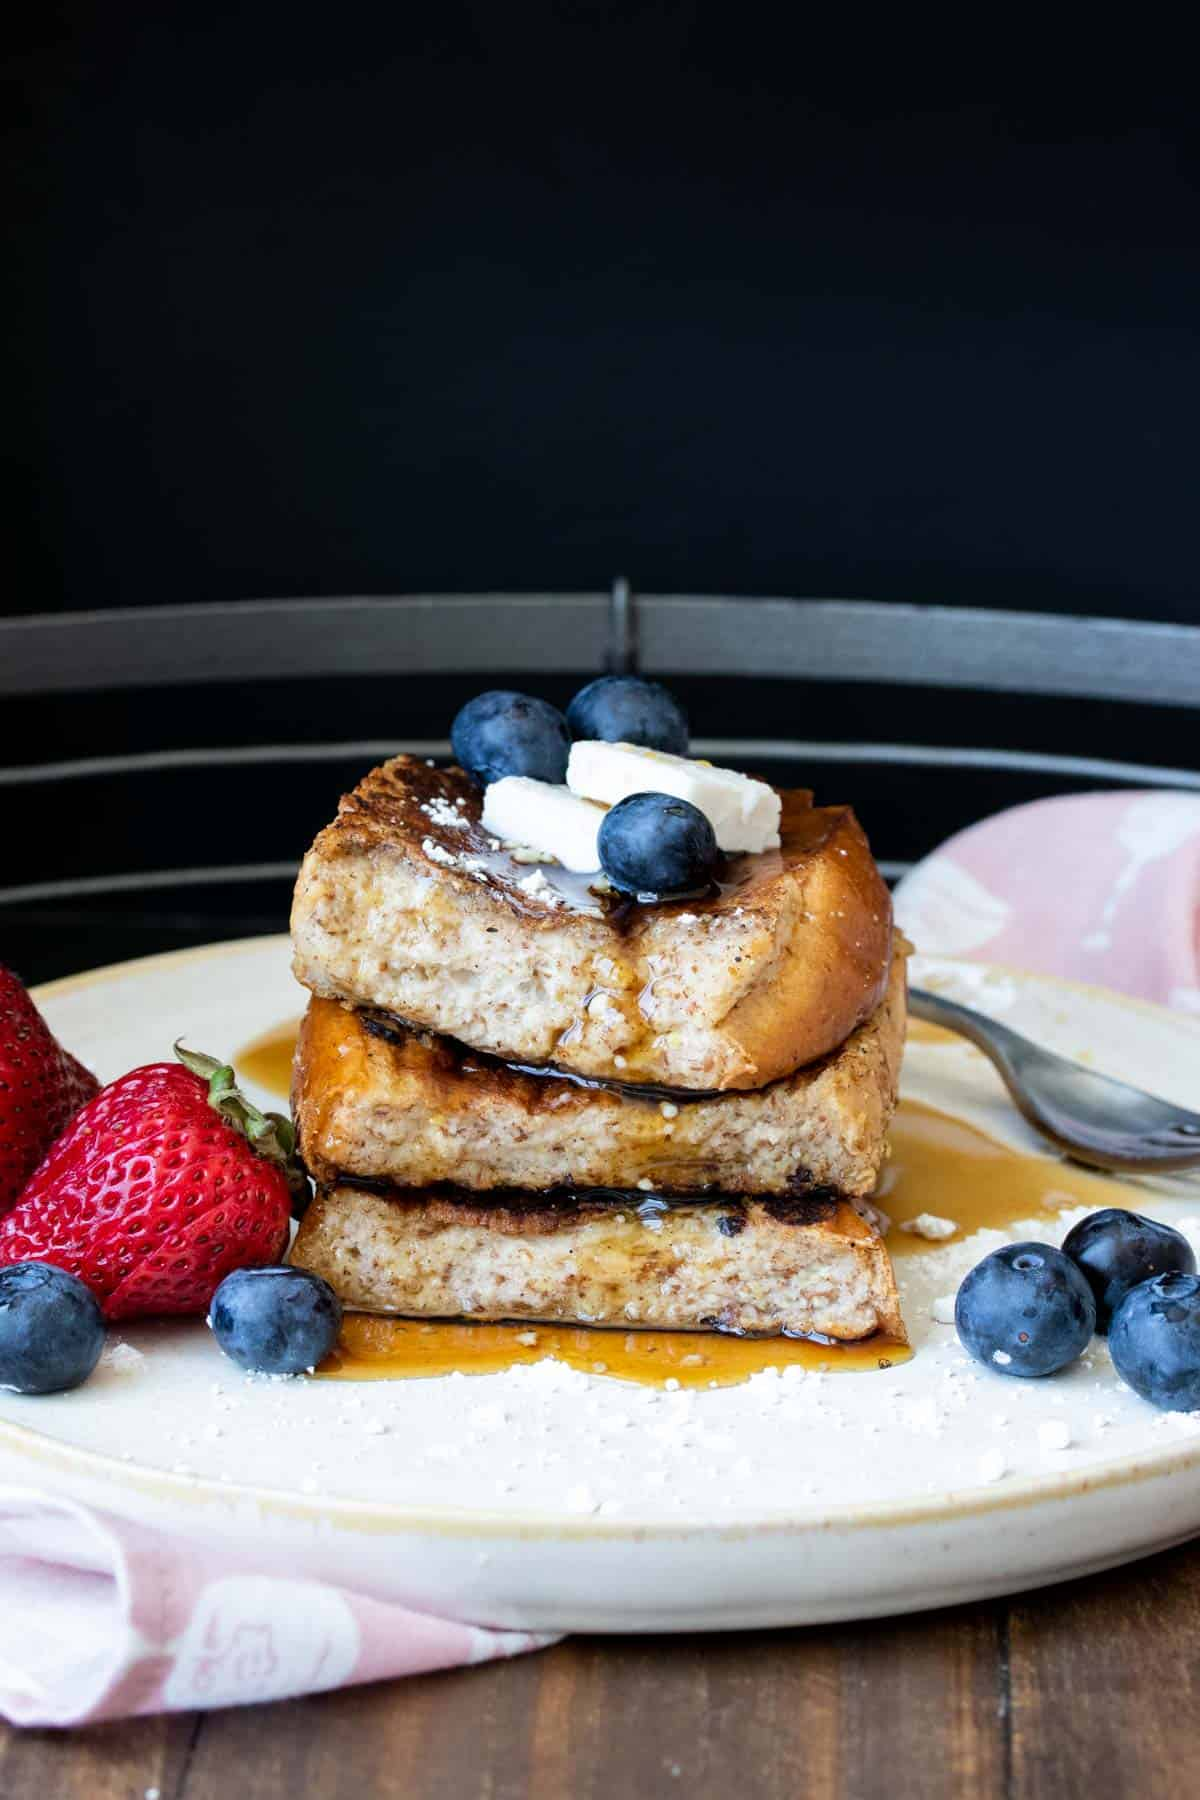 Three pieces of French toast topped with butter and berries piled up